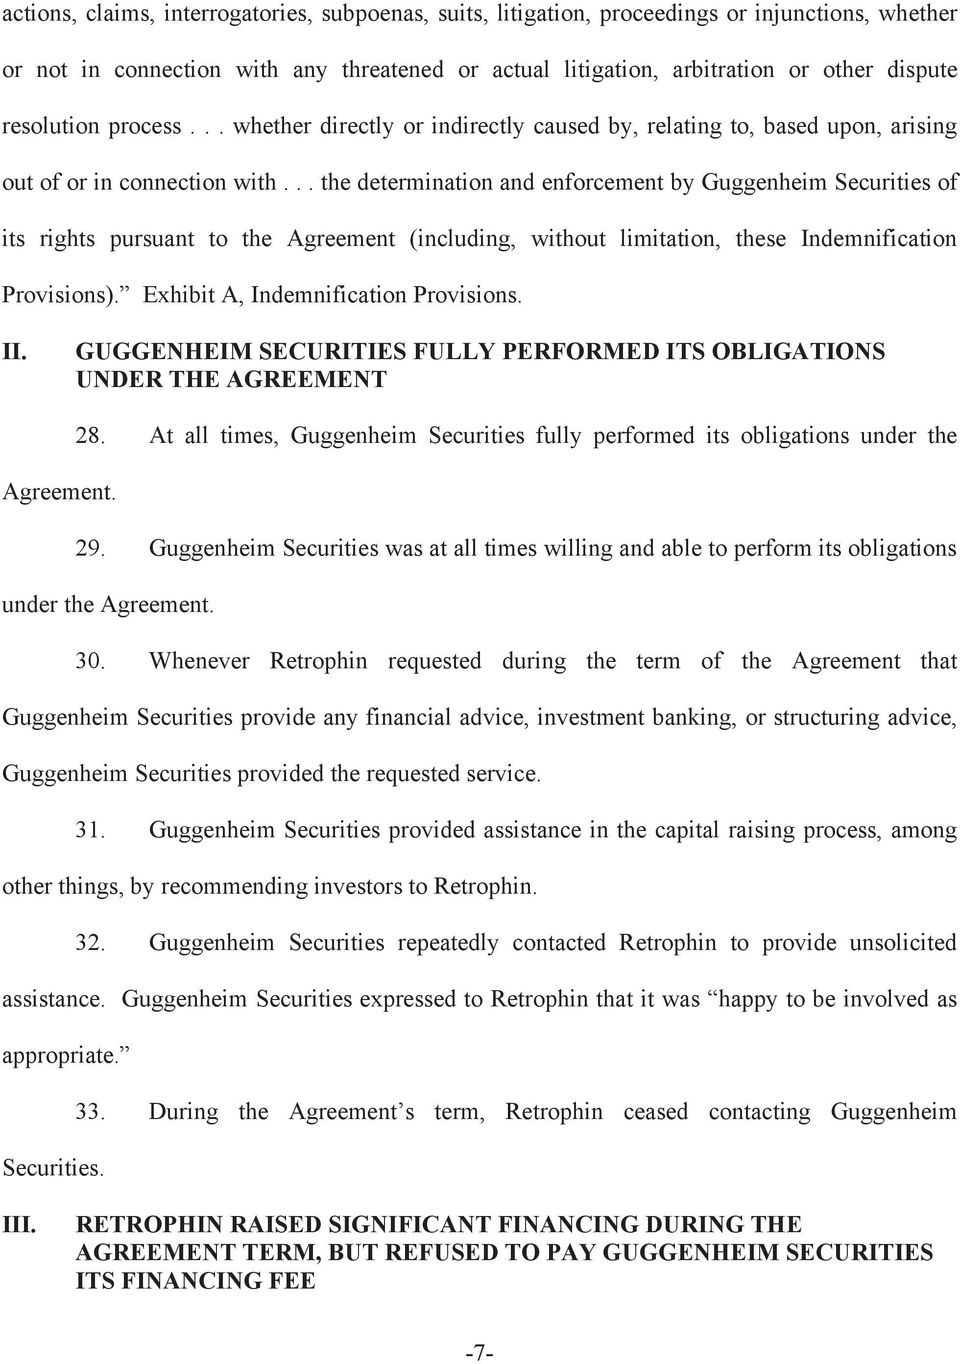 .. the determination and enforcement by Guggenheim Securities of its rights pursuant to the Agreement (including, without limitation, these Indemnification Provisions).